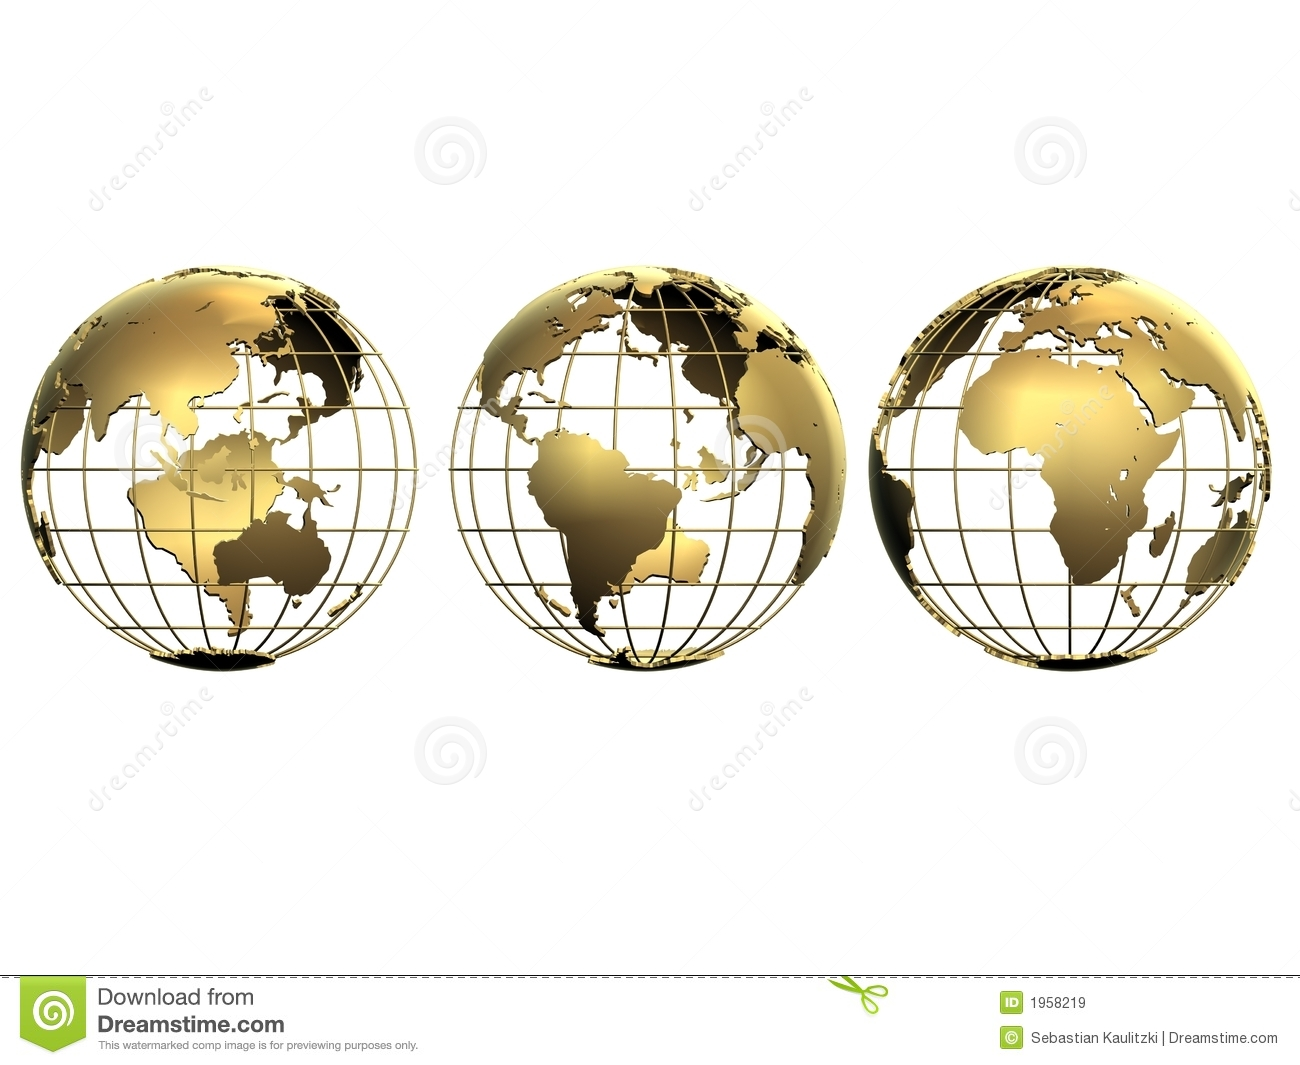 All About Google Earth and World Map Apps